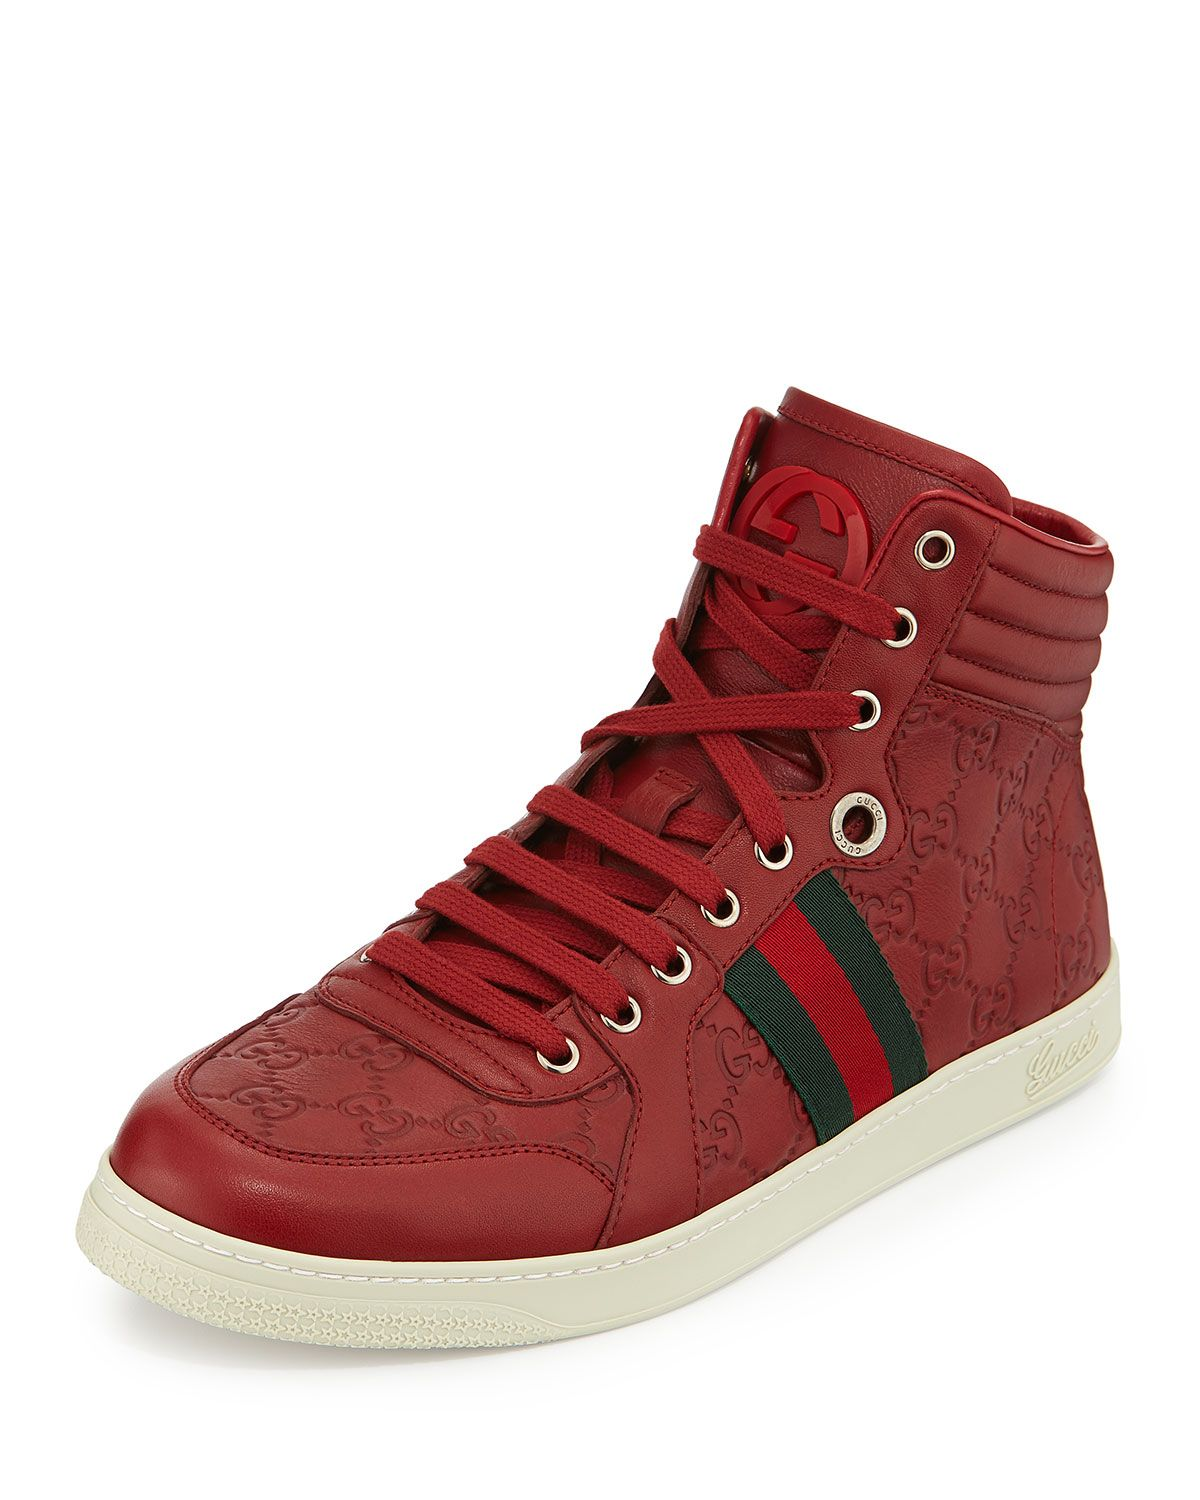 Gucci Leather HighTop Sneaker w/ Web, Red High top